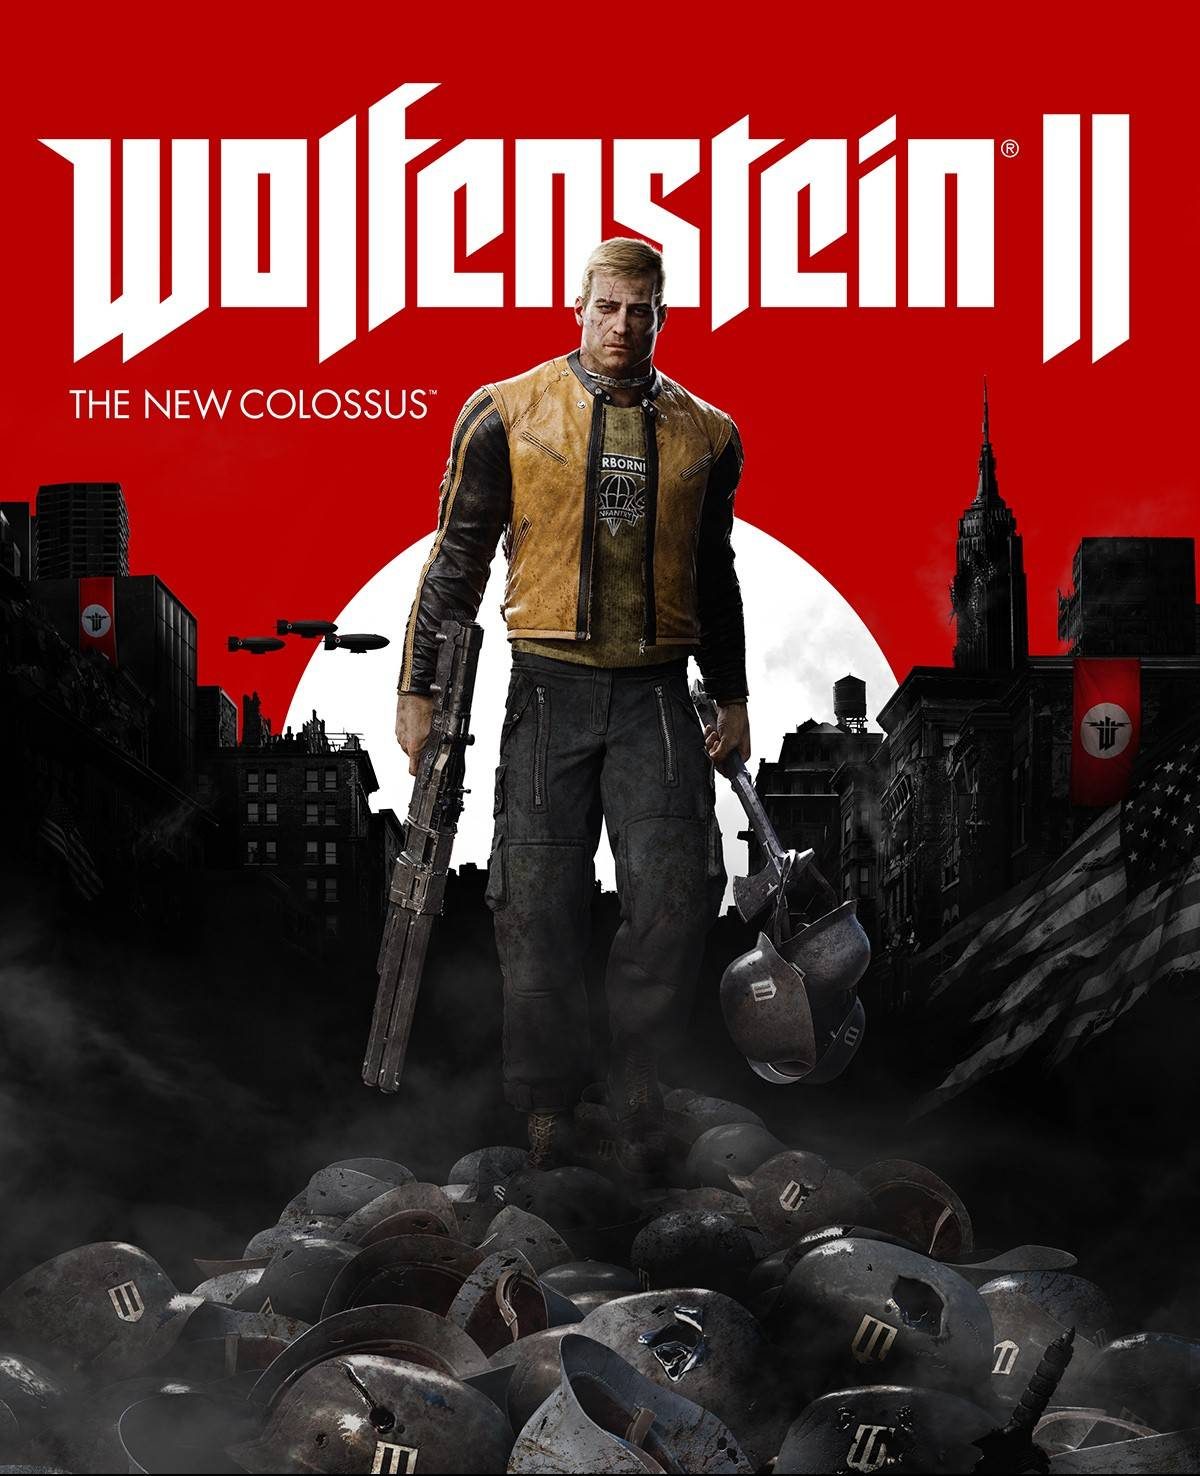 bethesda game studios Wolfenstein II: The New Colossus